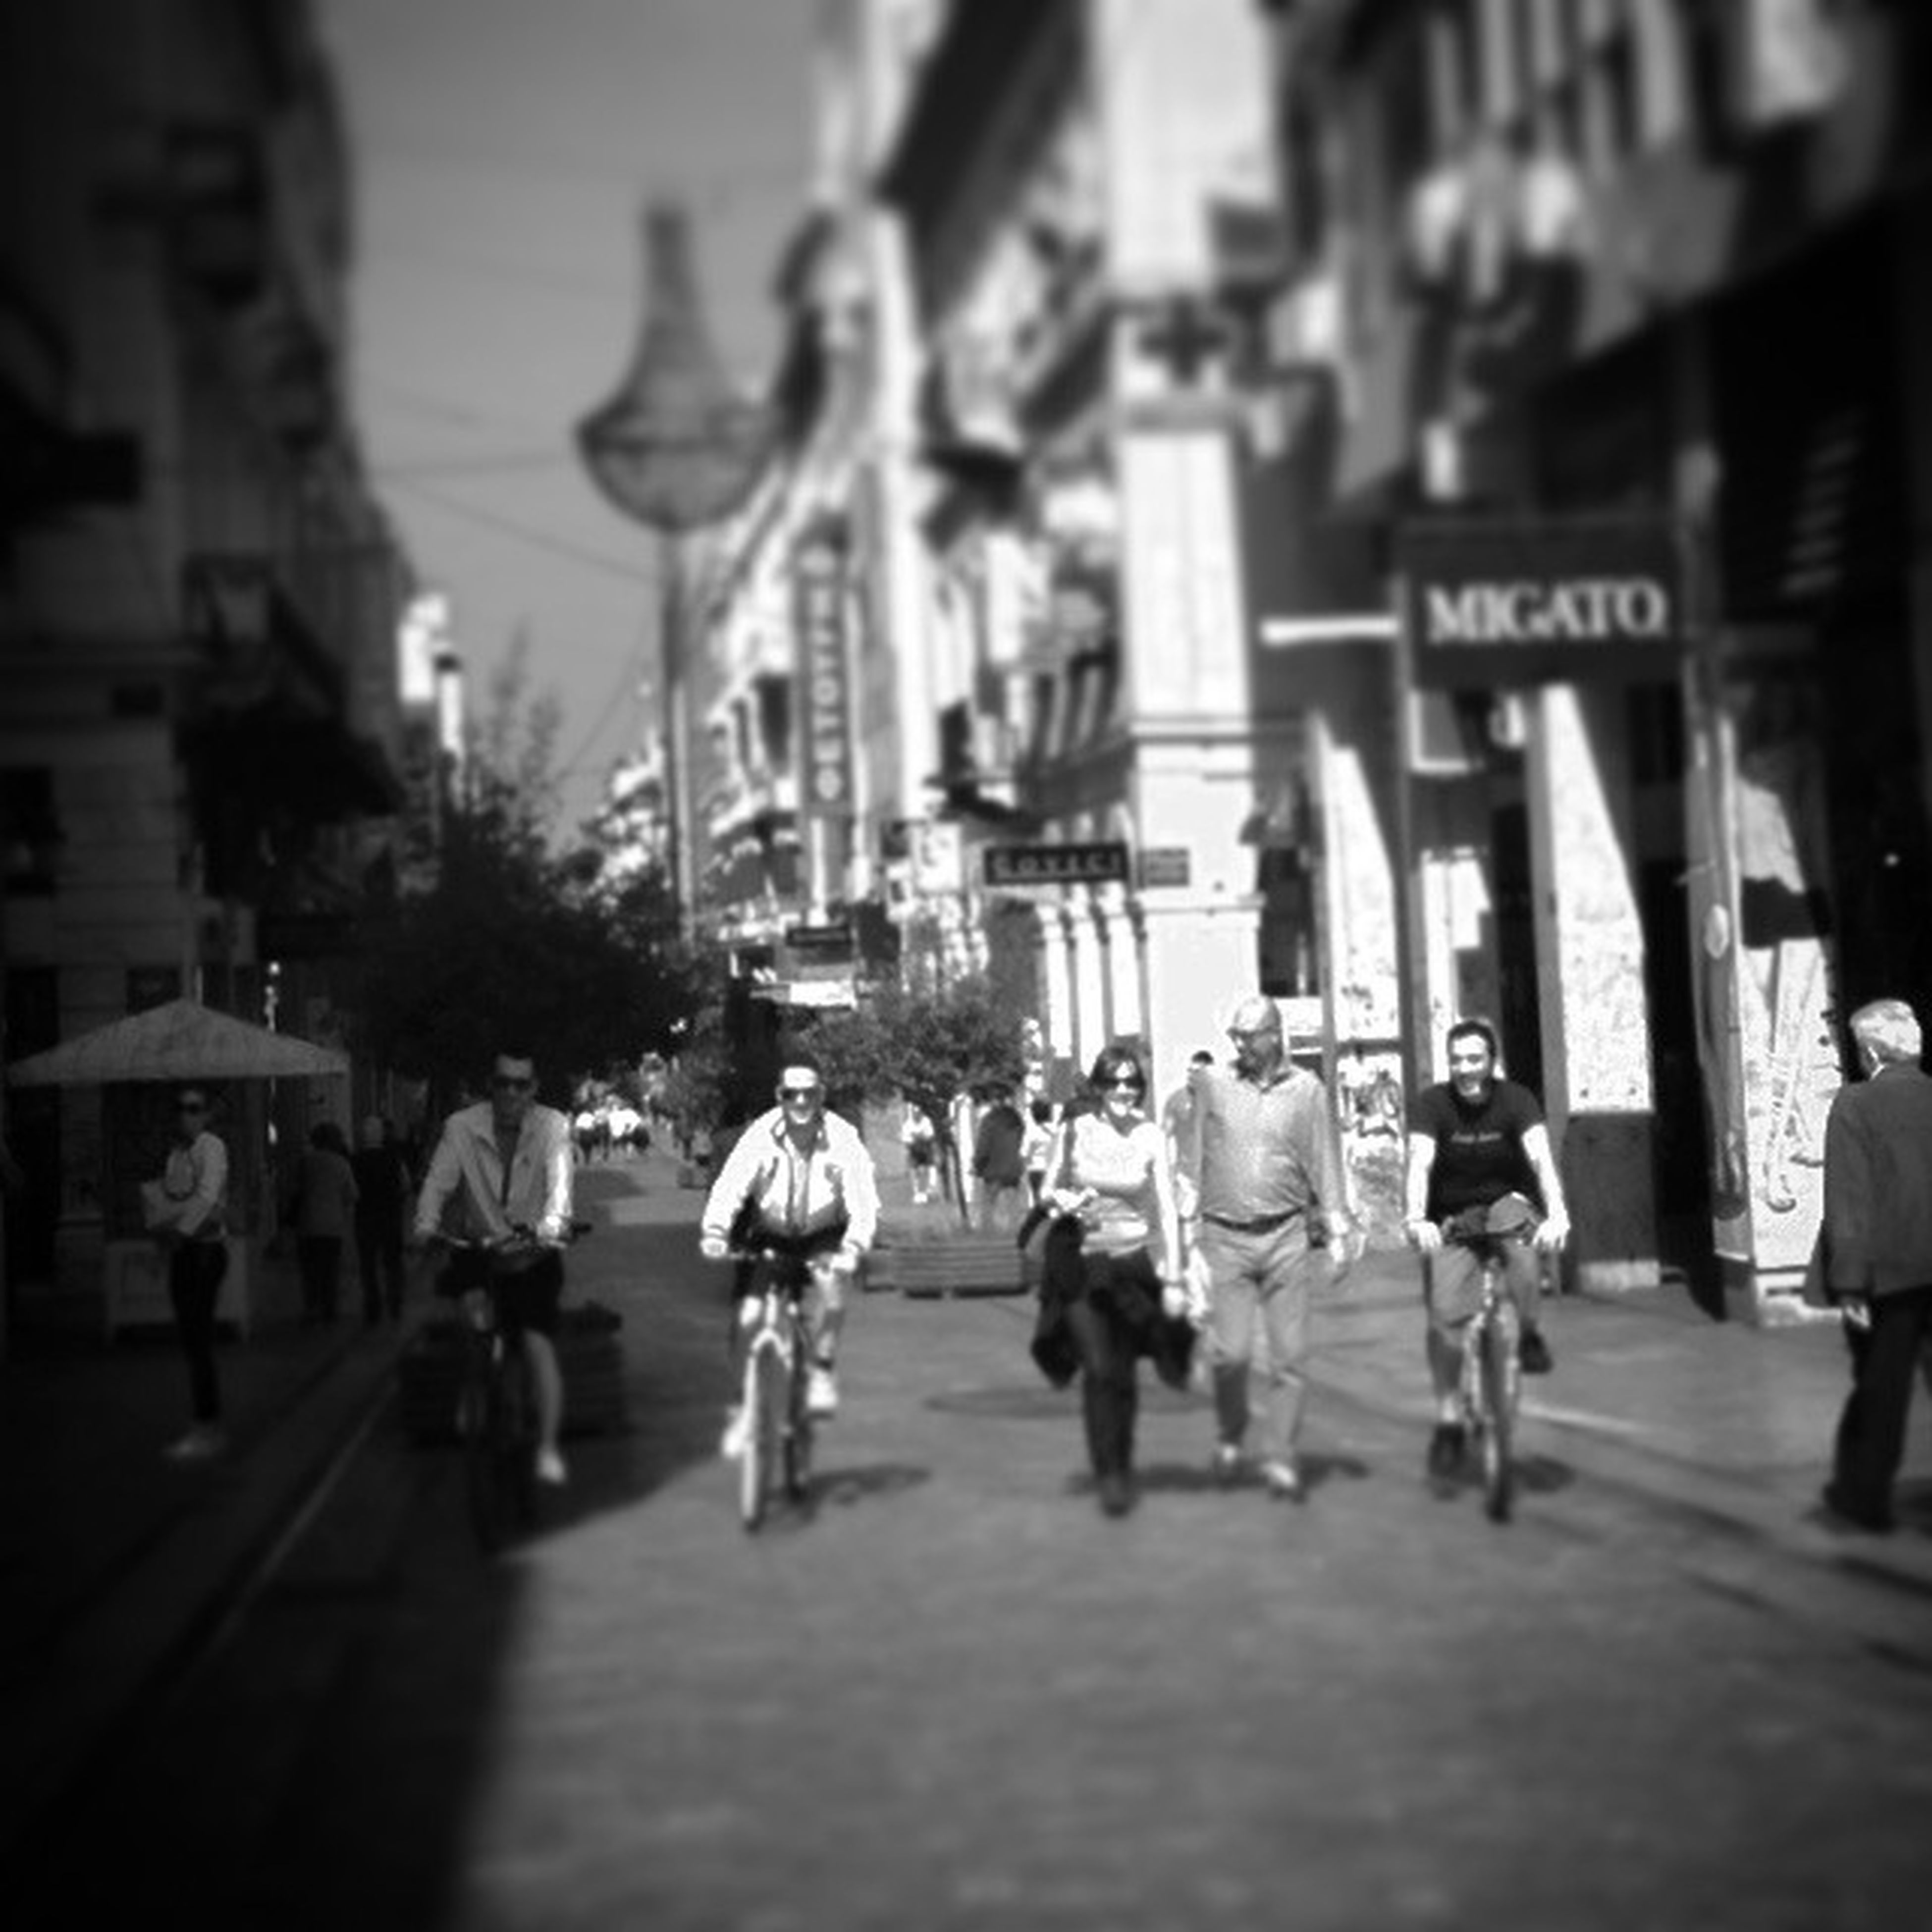 walking, street, building exterior, architecture, men, city, built structure, person, city life, large group of people, the way forward, lifestyles, road, transportation, on the move, city street, full length, leisure activity, group of people